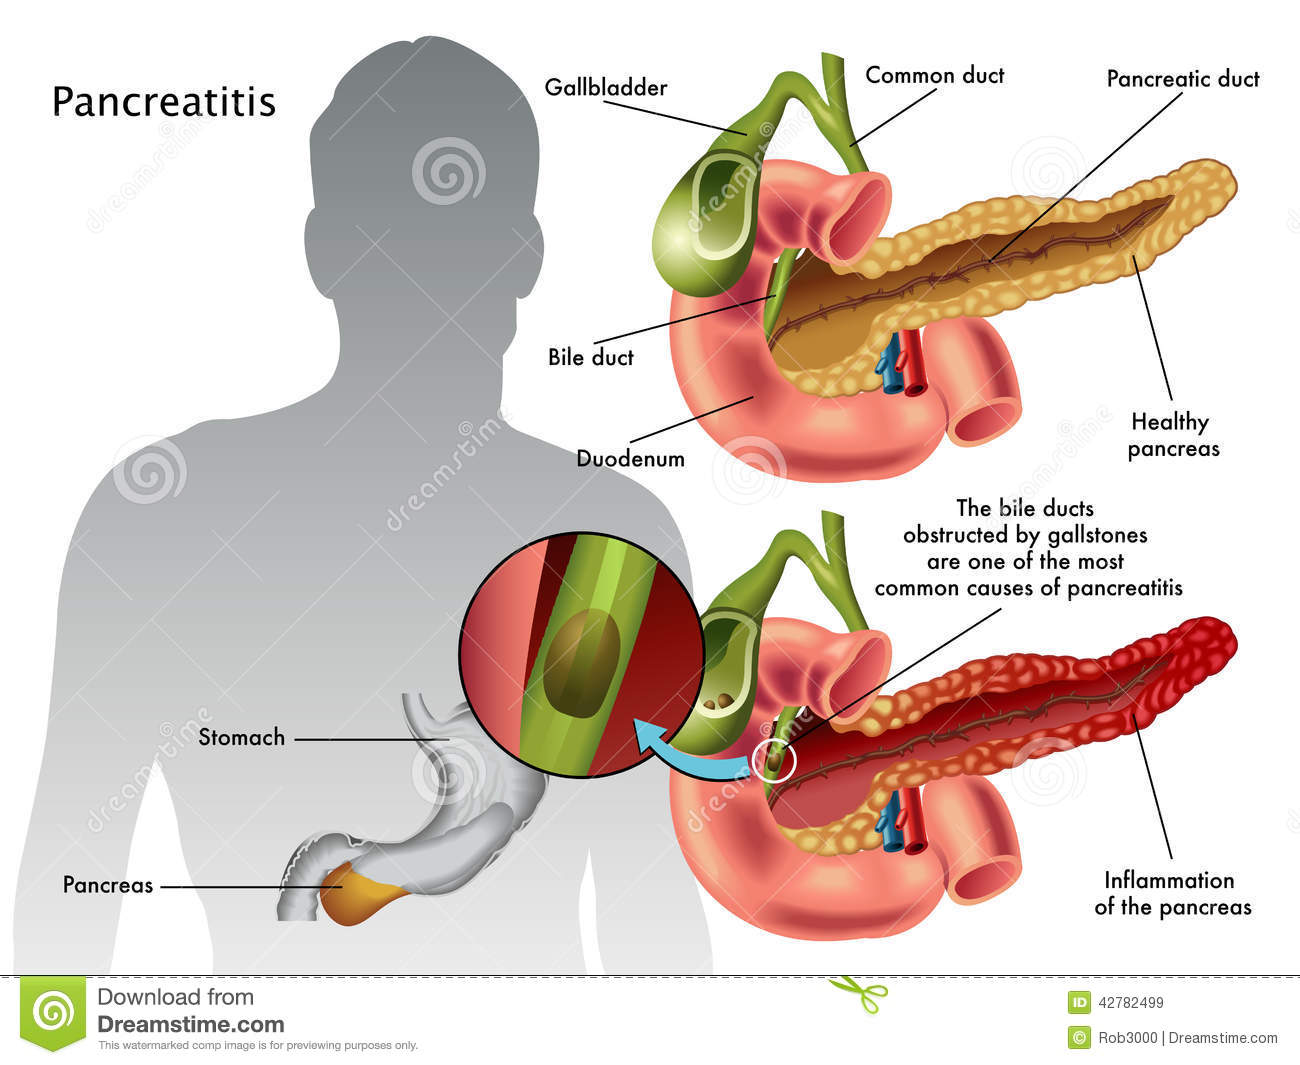 symptoms and symptoms of acute pancreatitis The first sign of acute pancreatitis is a pain in the upper abdomen that can radiate to the back the pain is often severe and may last for several days other symptoms of pancreatitis include.